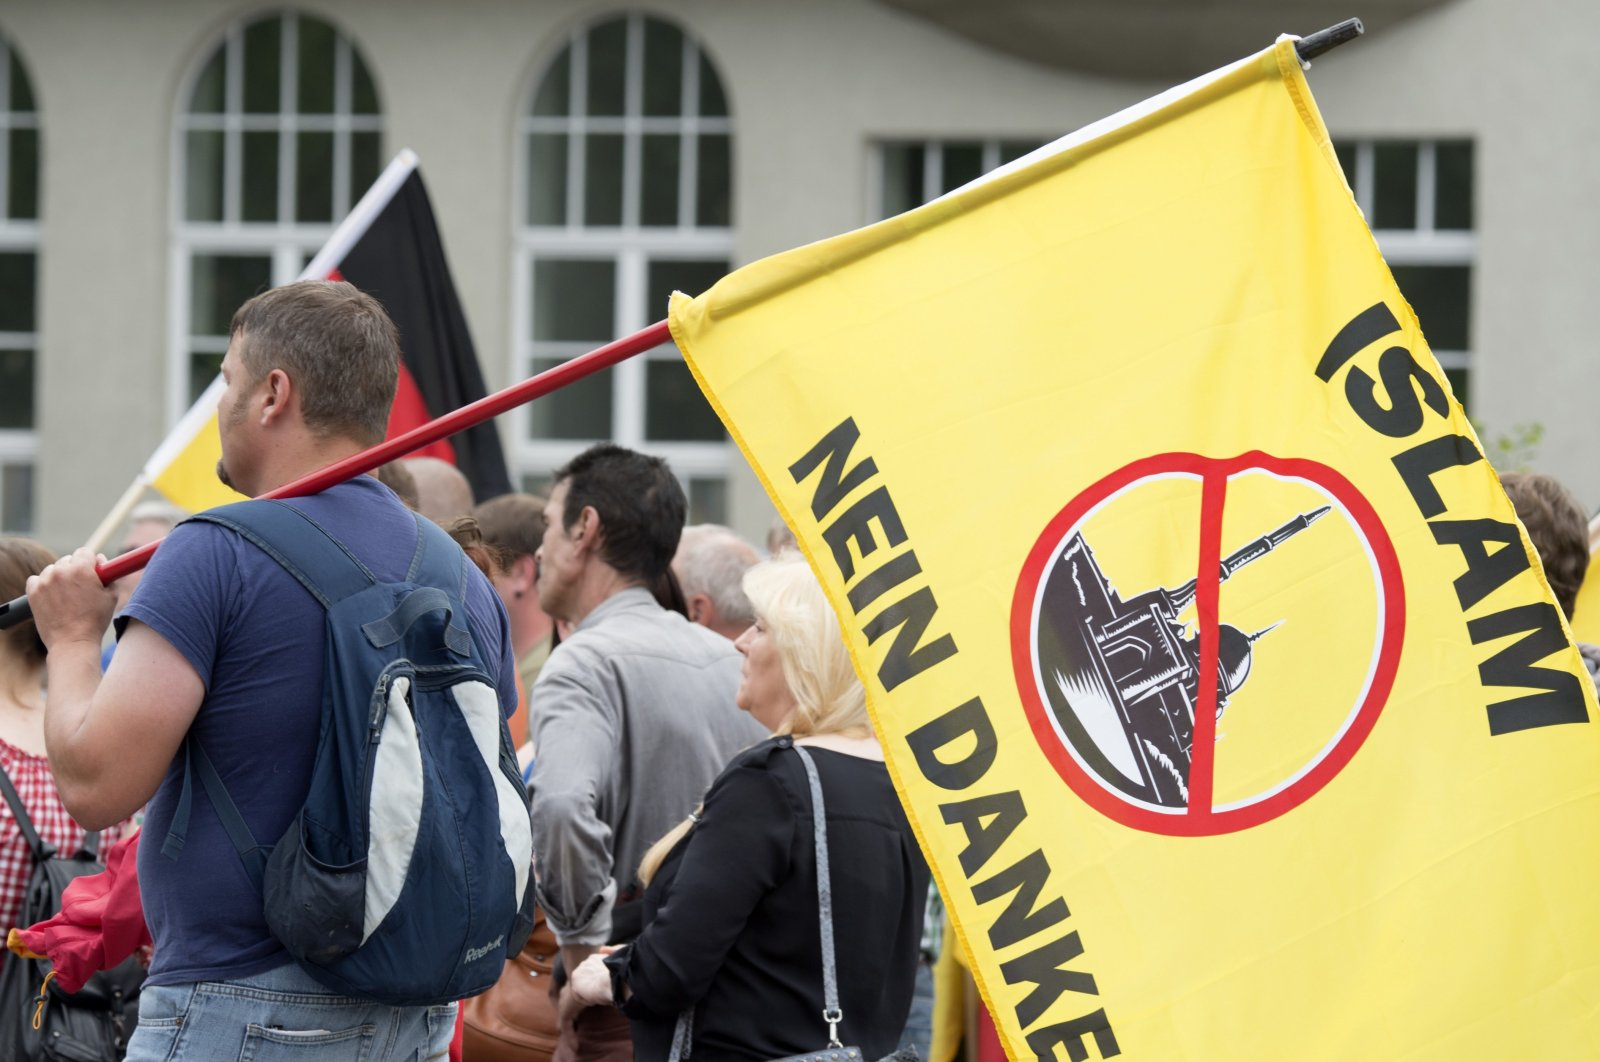 """A supporter of the right-wing group """"Patriotic Europeans say no"""" holds a flag reading """"Islam, no thanks"""" during a rally in Erfurt, Germany, June 4, 2016. (AP Photo)"""